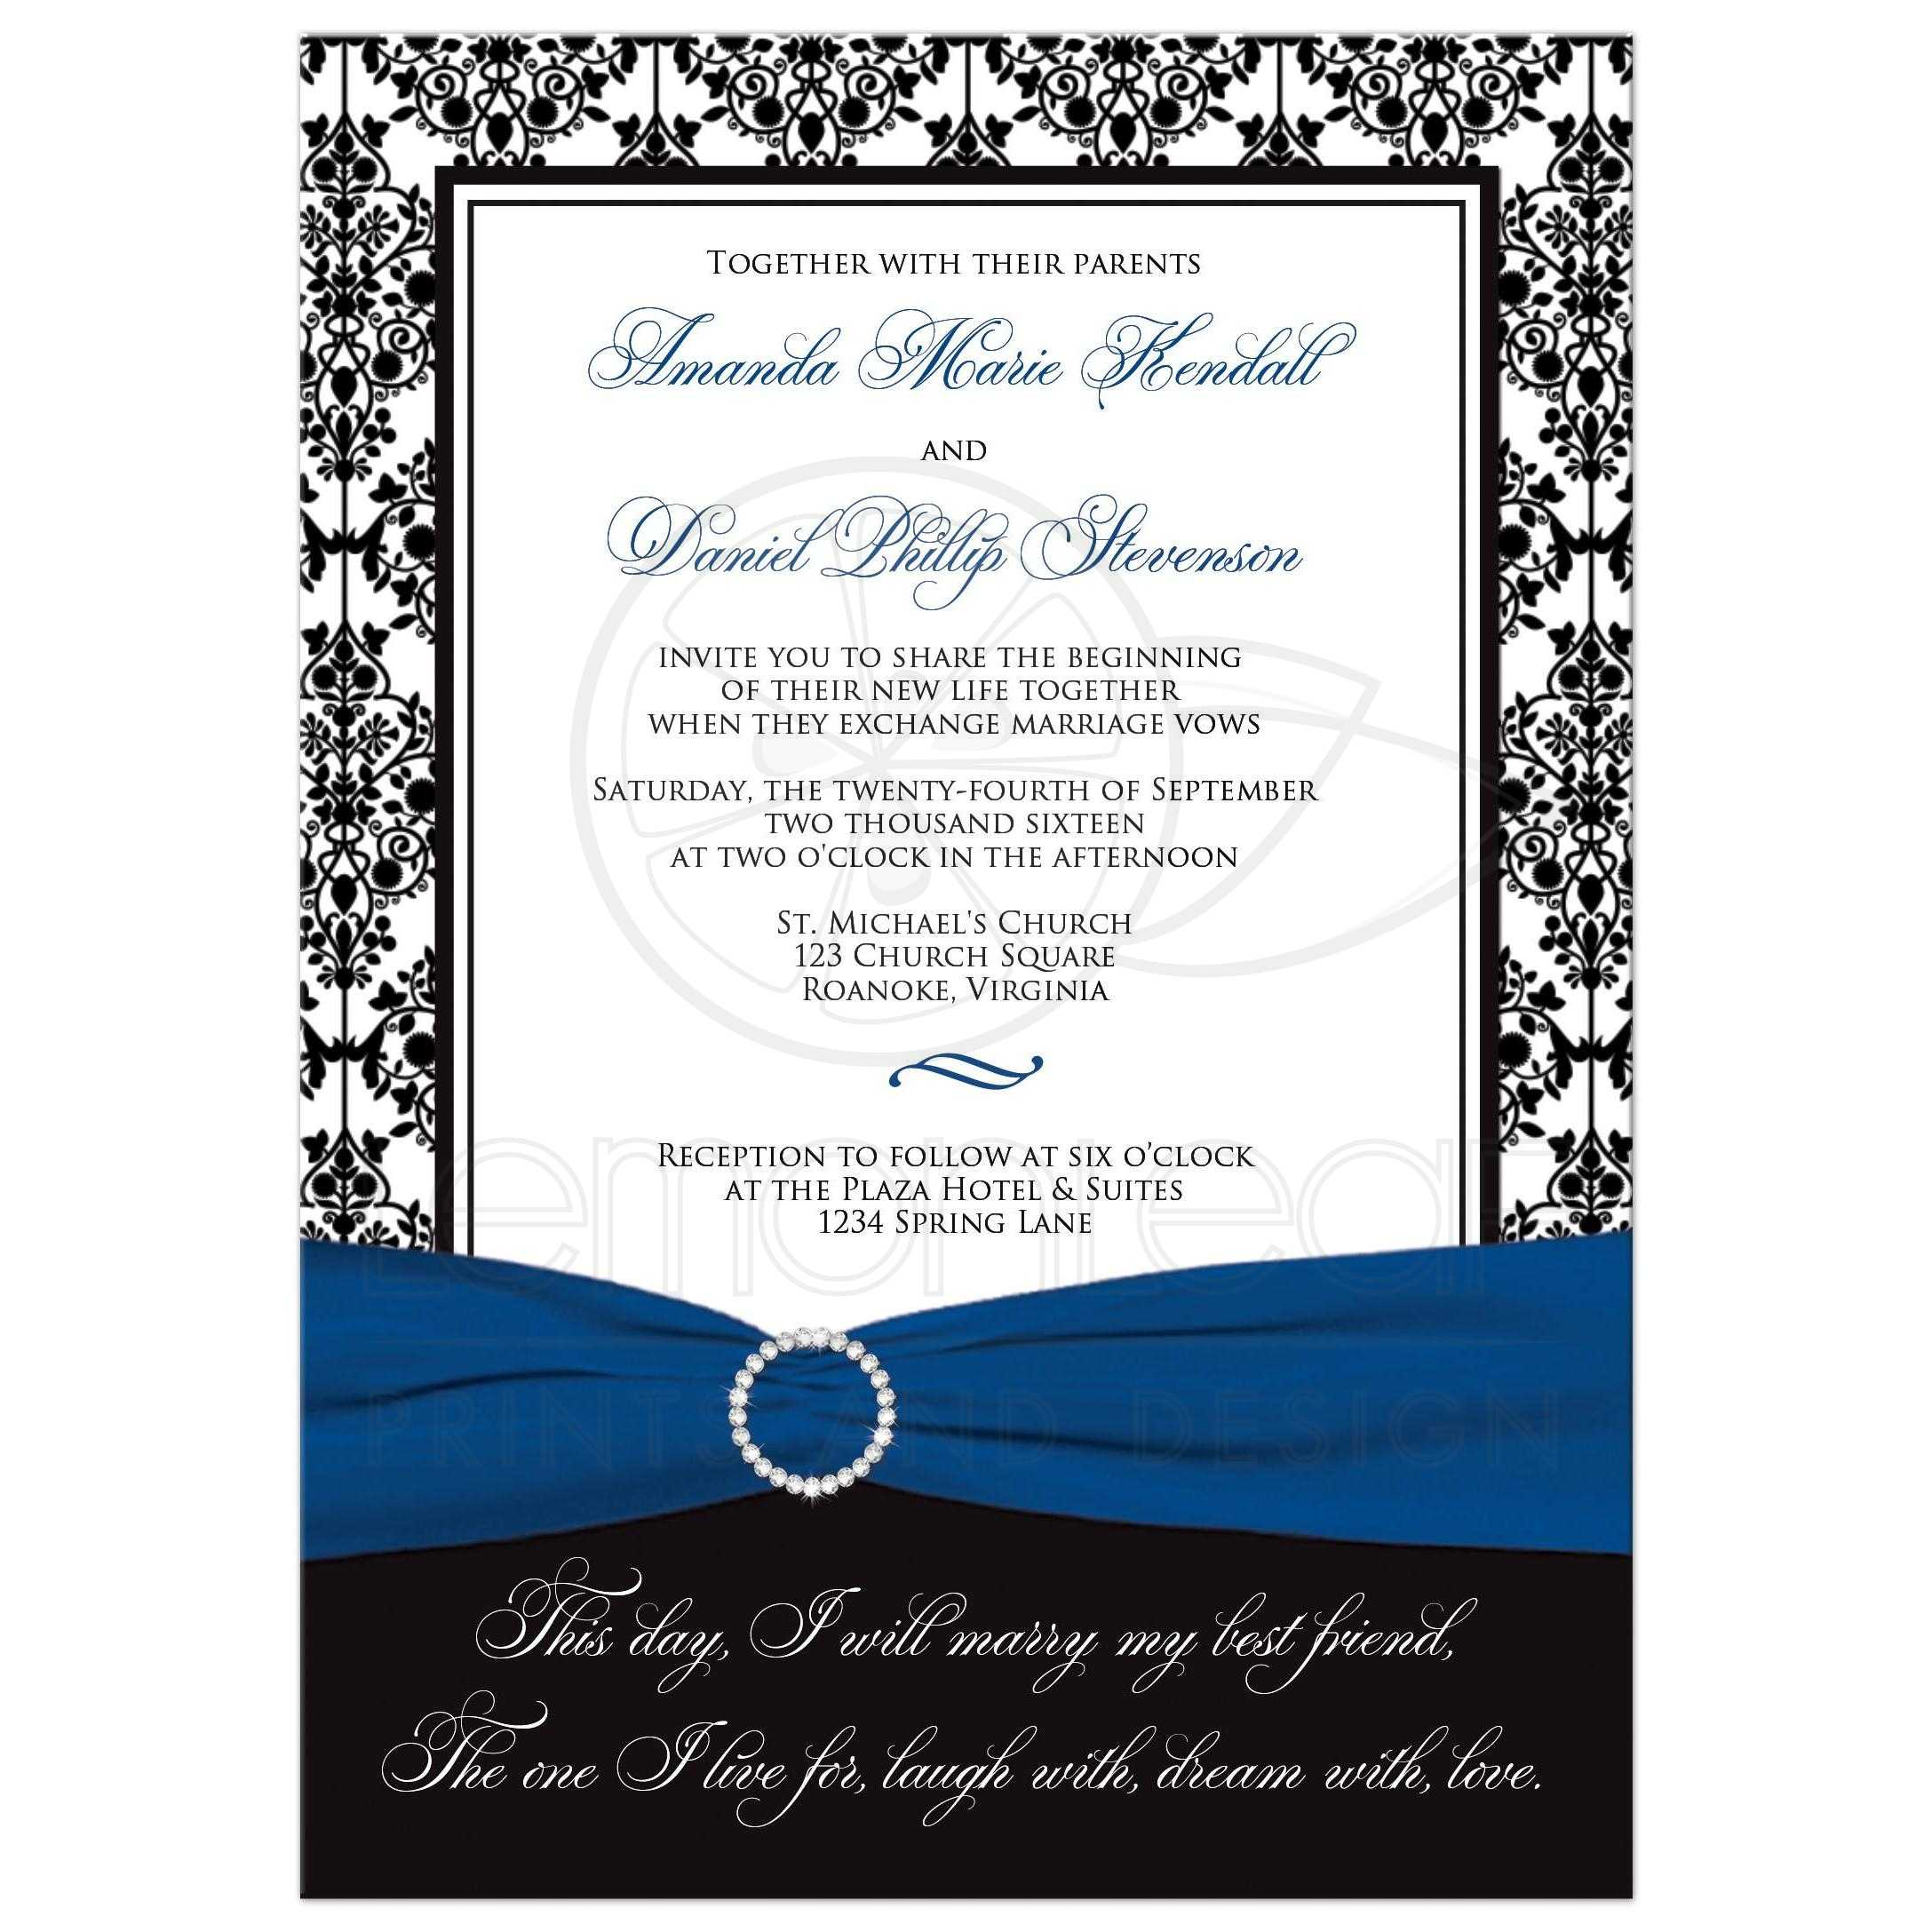 Wedding Invitation | Black, White Damask | Printed Royal Blue Ribbon ...